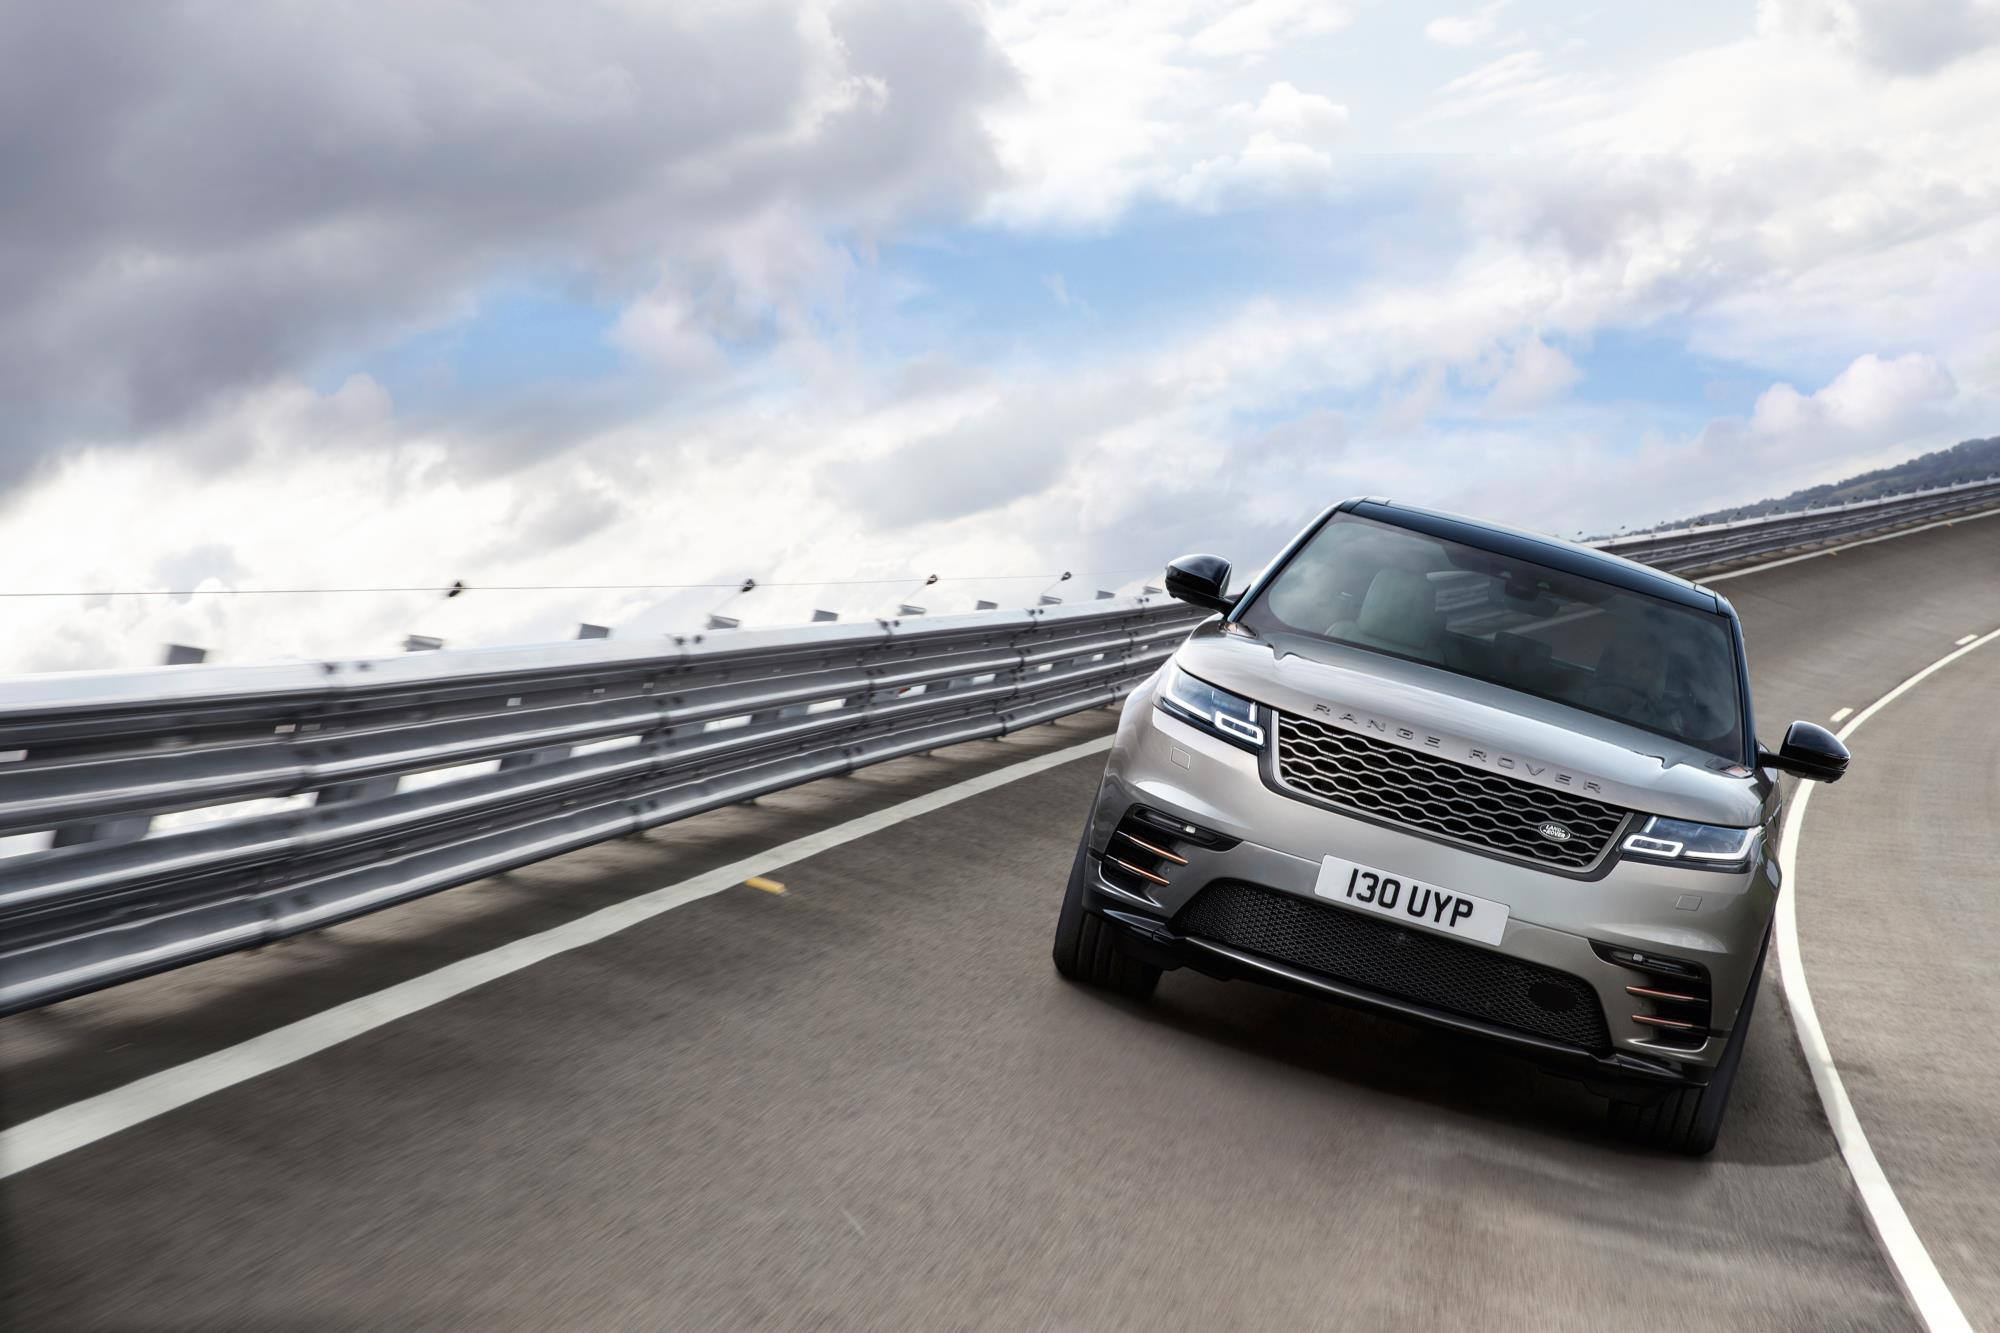 Metallic tauper Range Rover velar driving towards you